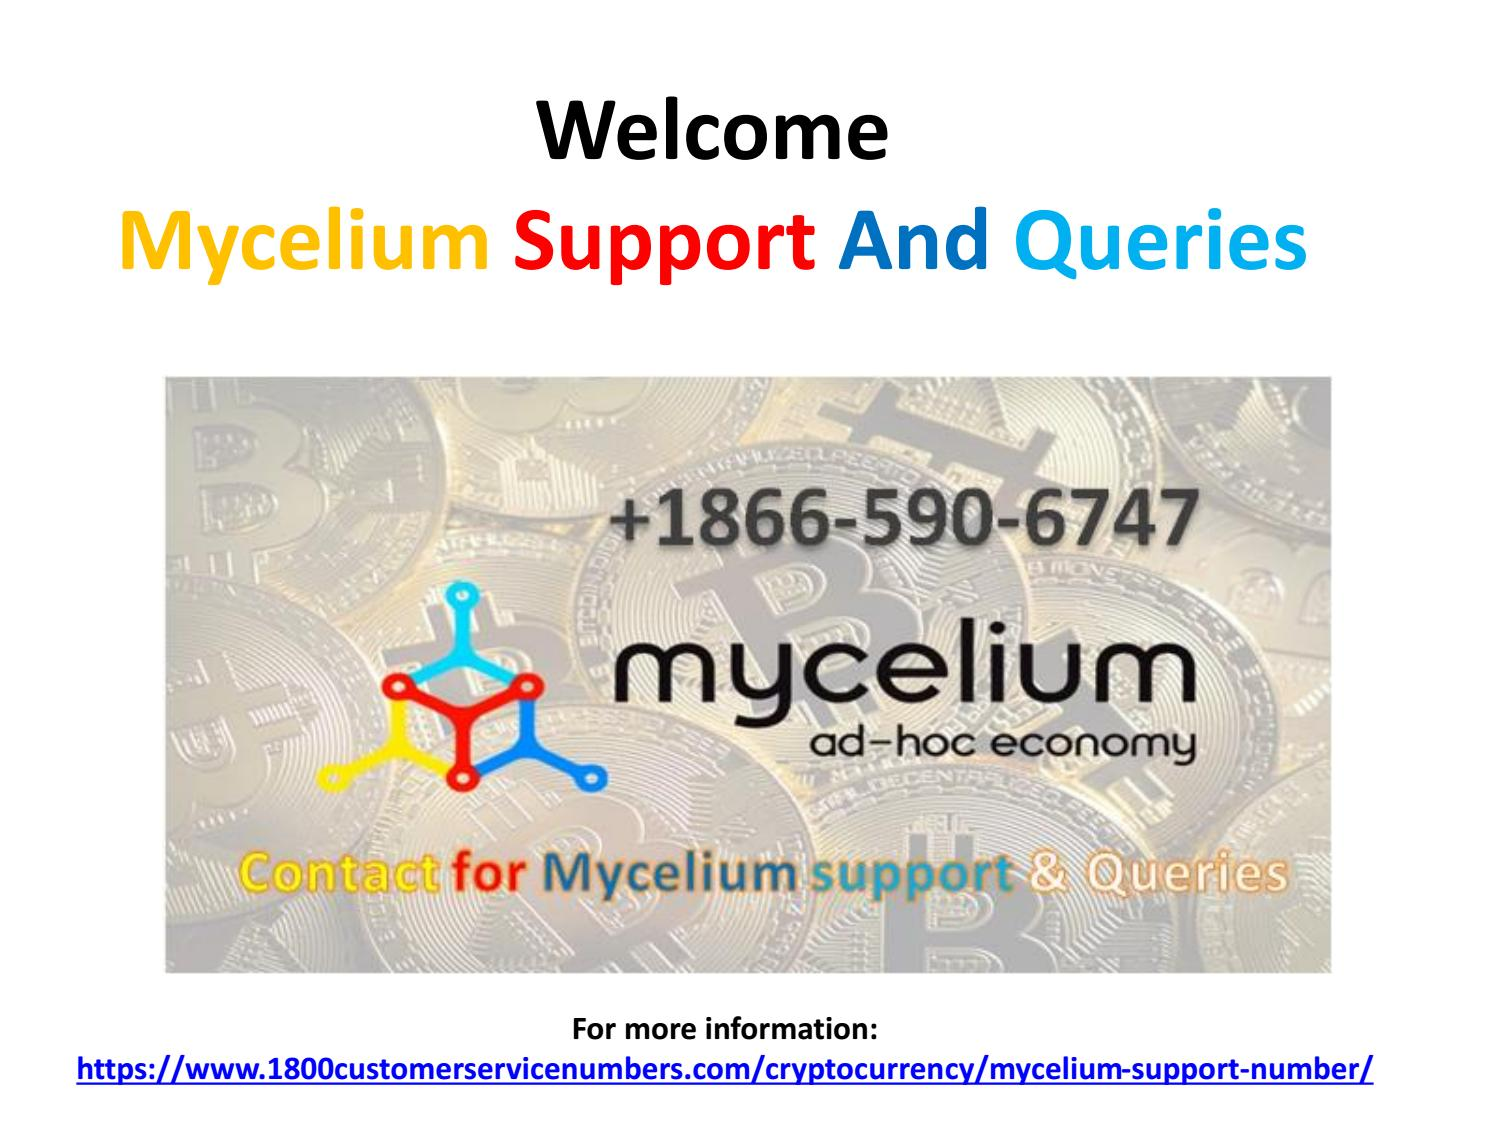 can you transfer any cryptocurrency to mycelium